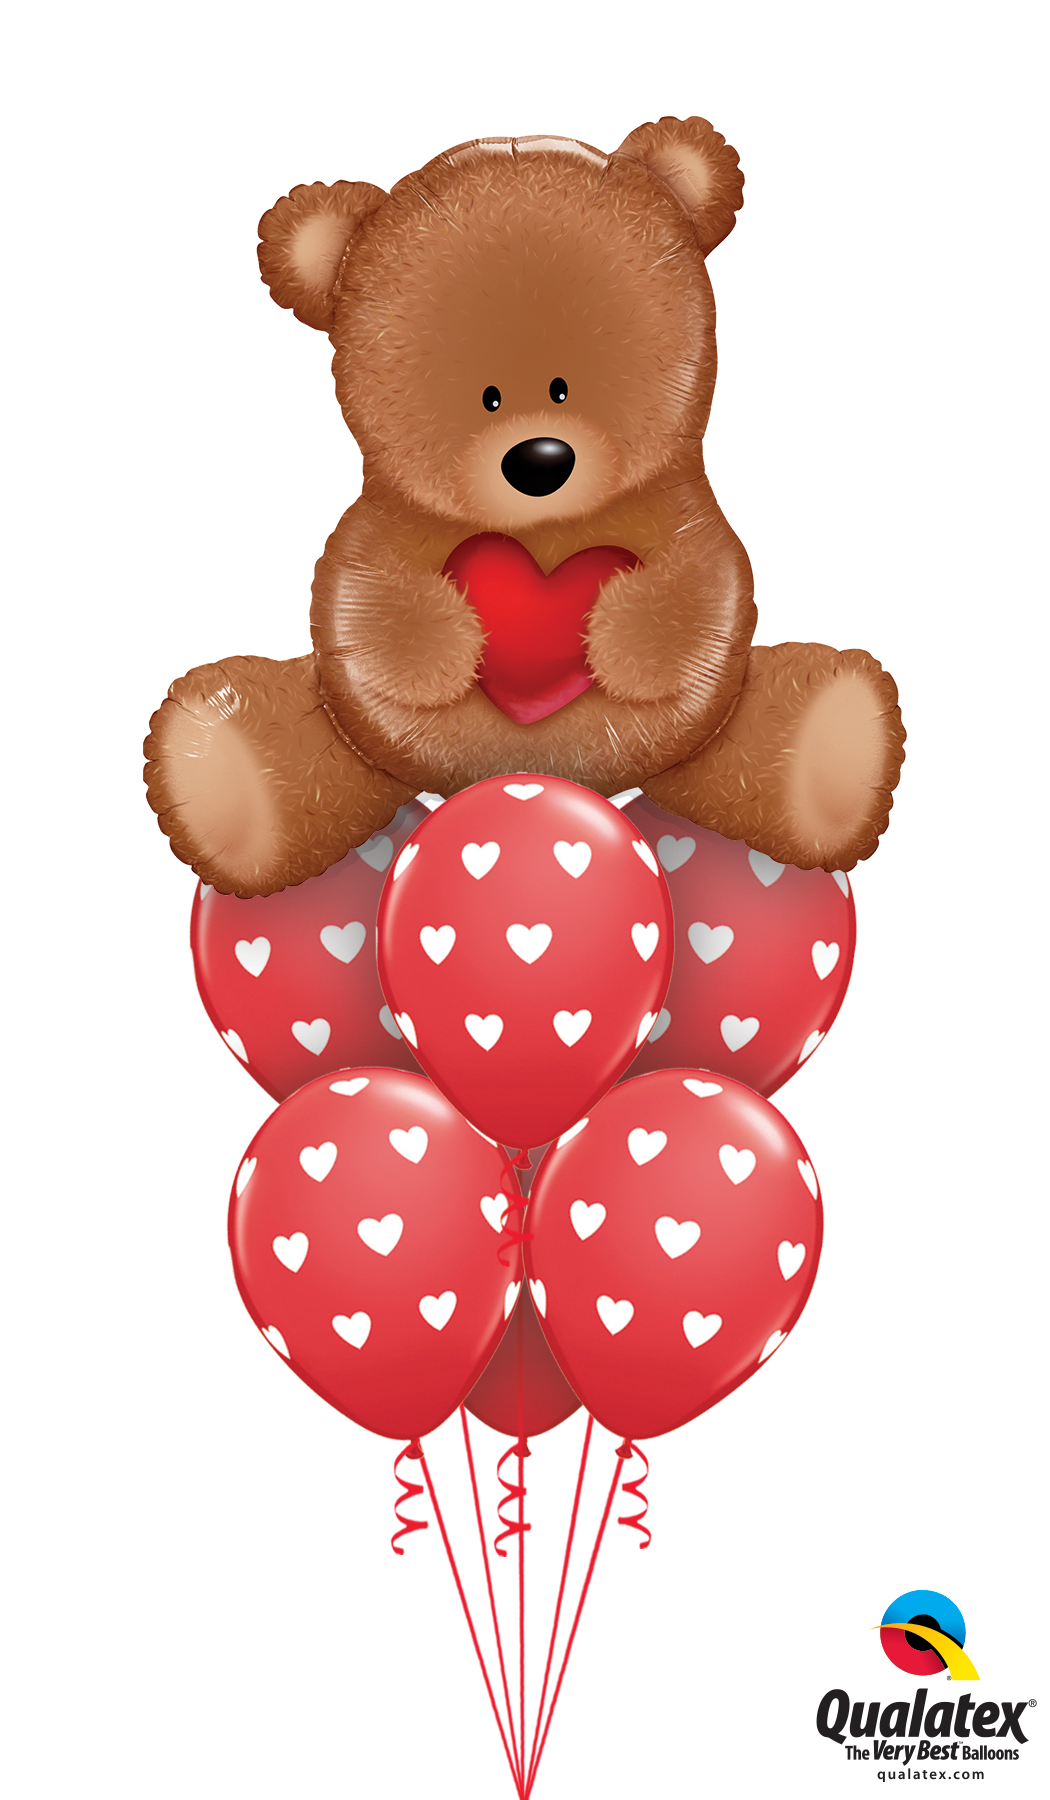 16453  76928  Teddy Bear Love Luxury